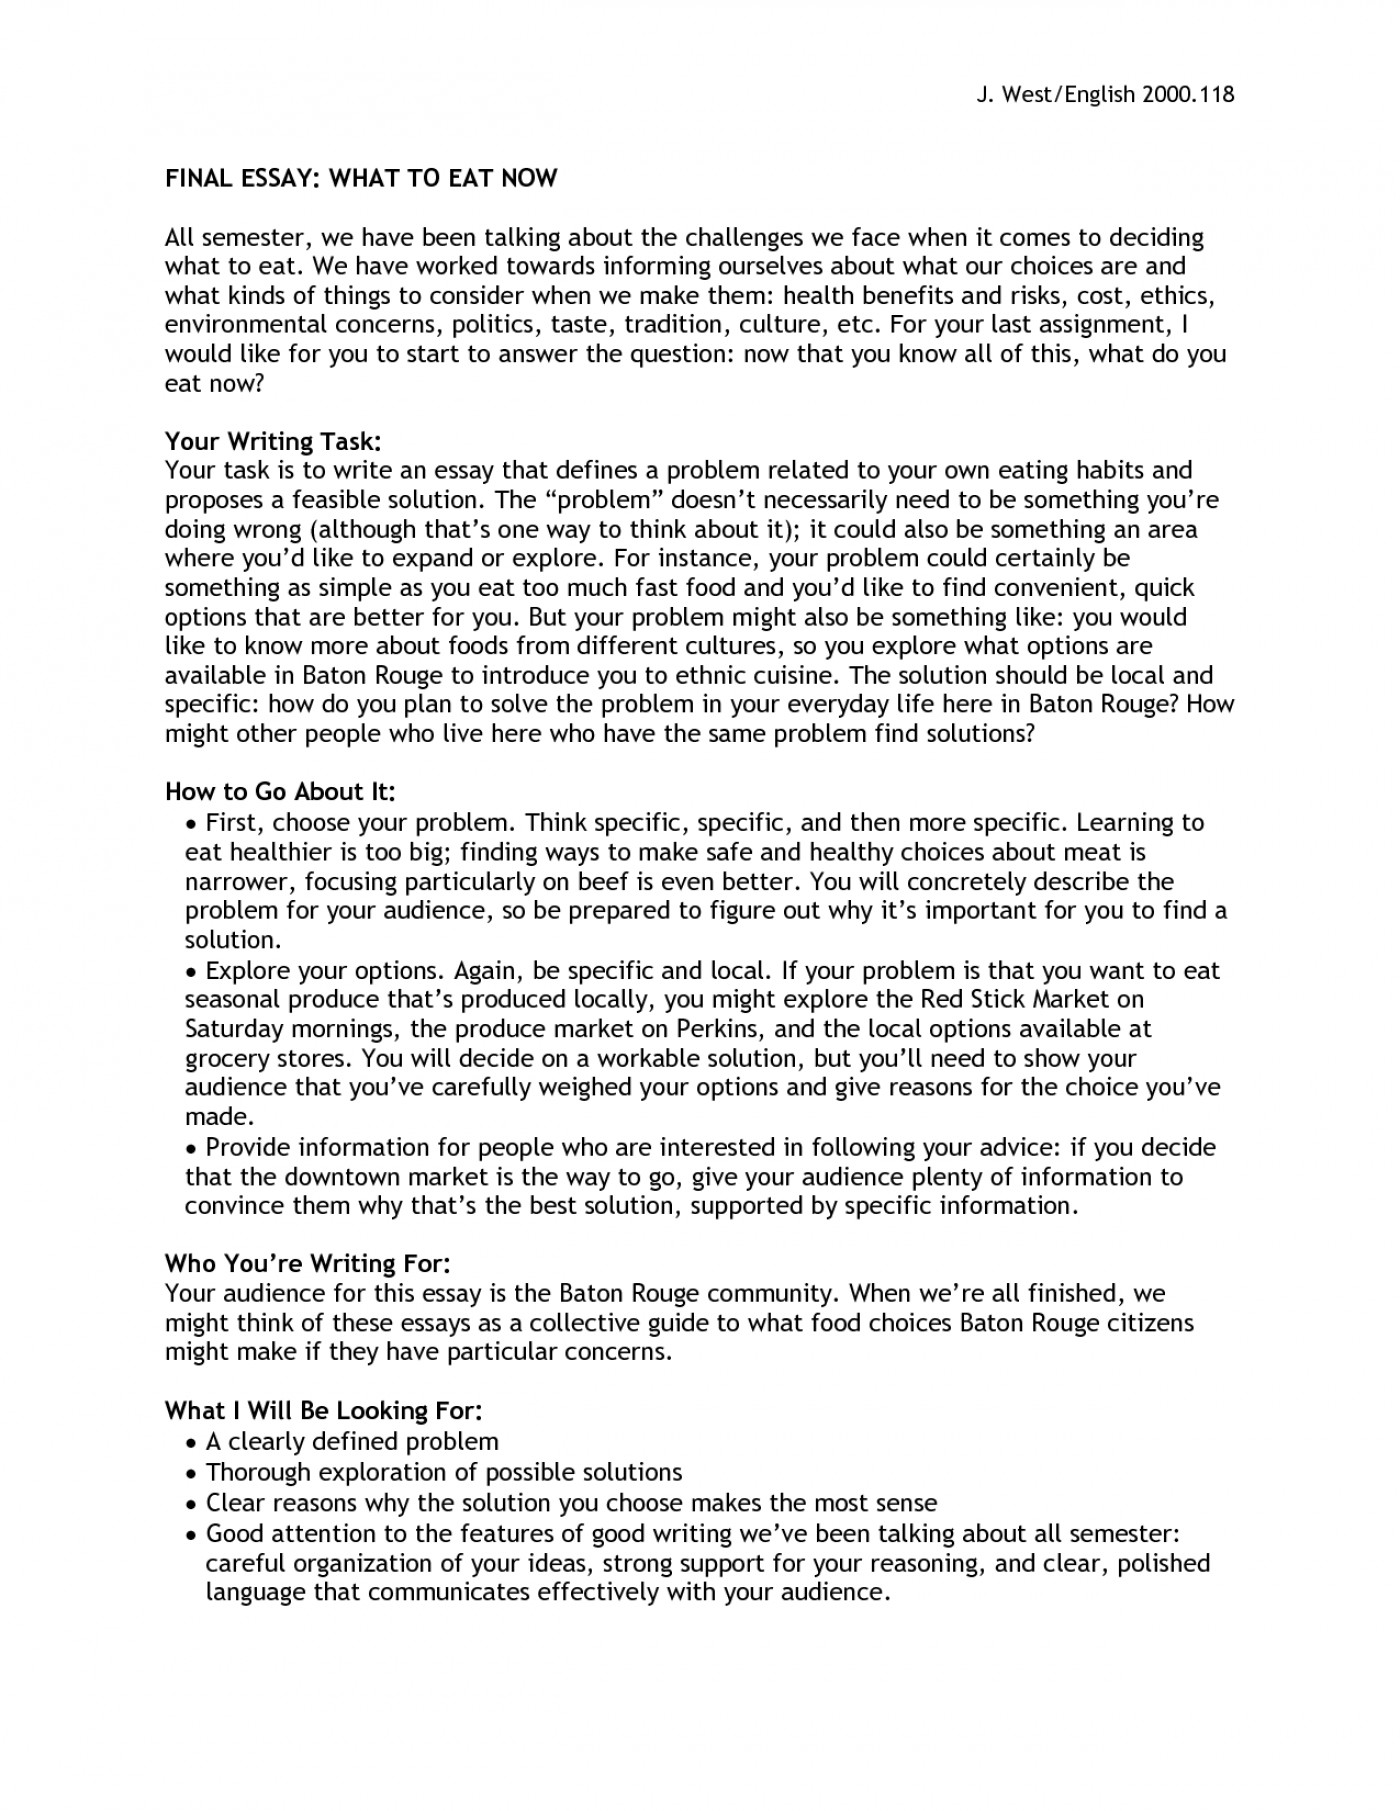 Easy Persuasive Essay Topics For High School  English Essays On Different Topics also Example Of An English Essay Autobiography Essay For Scholarship    My Autobiography  Environmental Health Essay